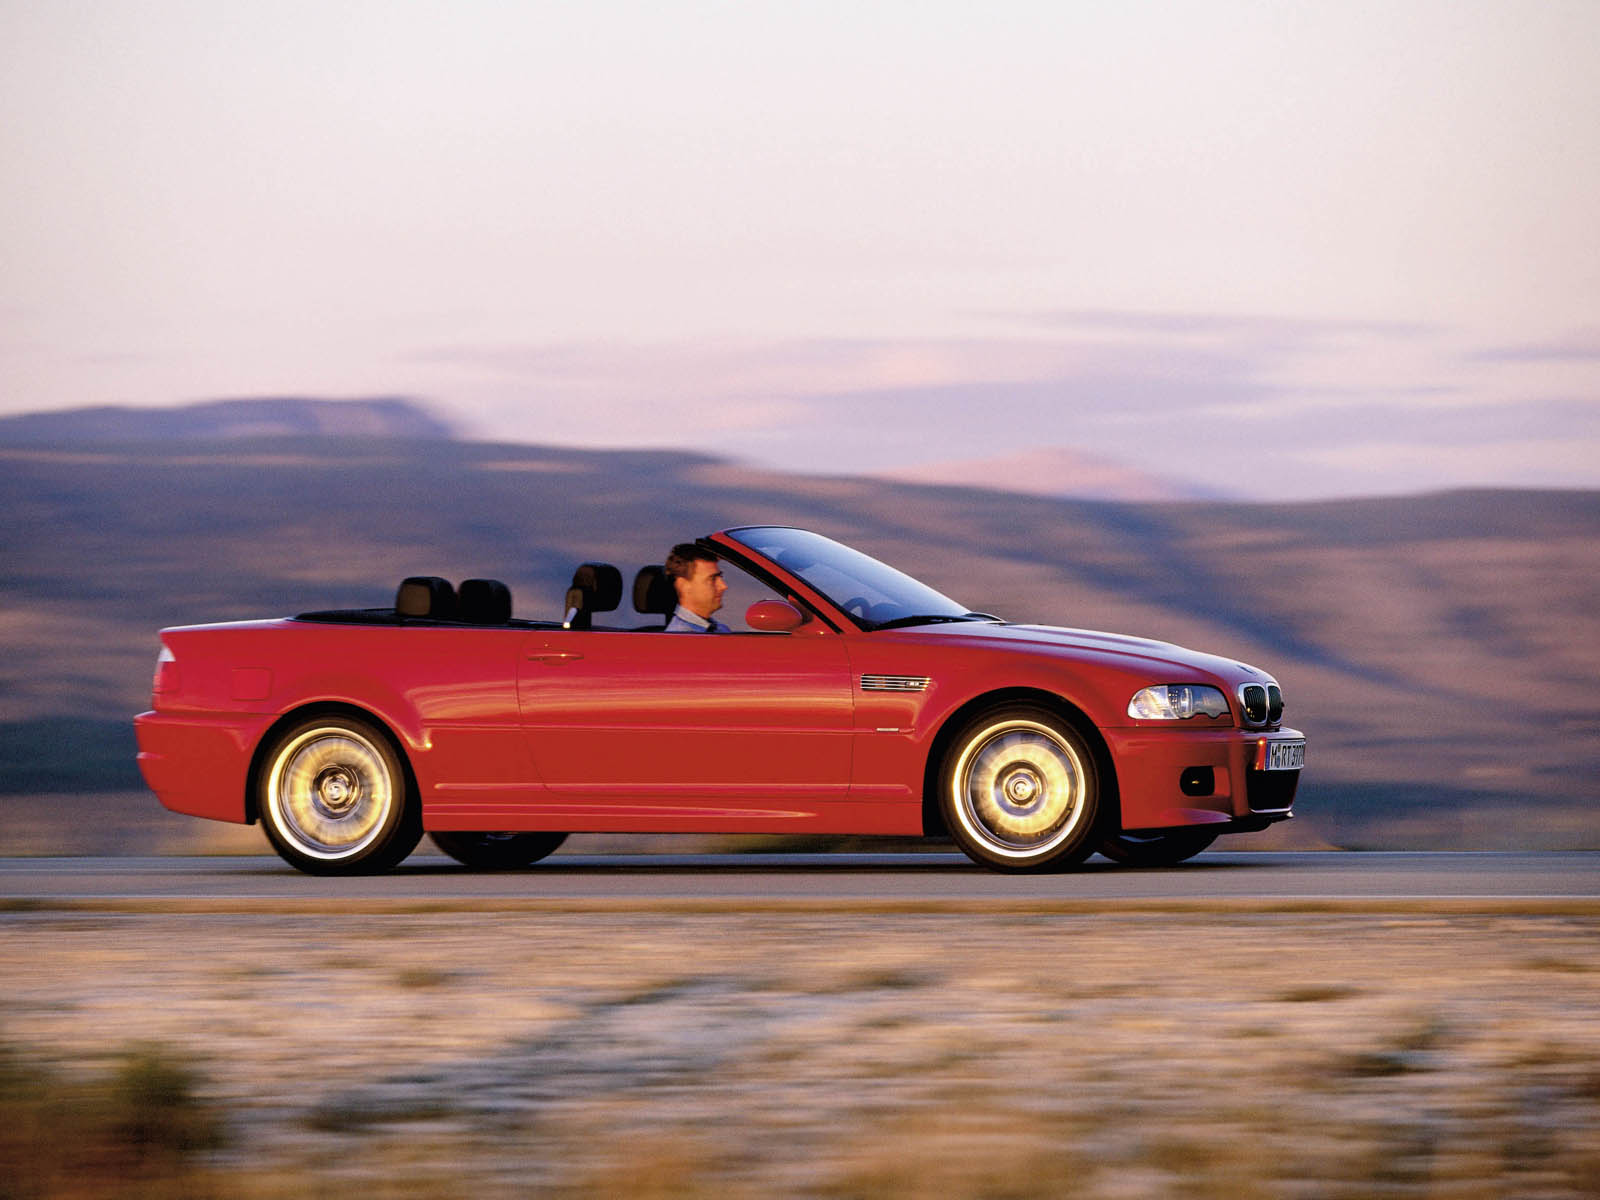 Bmw M3 E46 Convertible Picture 10235 Bmw Photo Gallery Carsbase Com